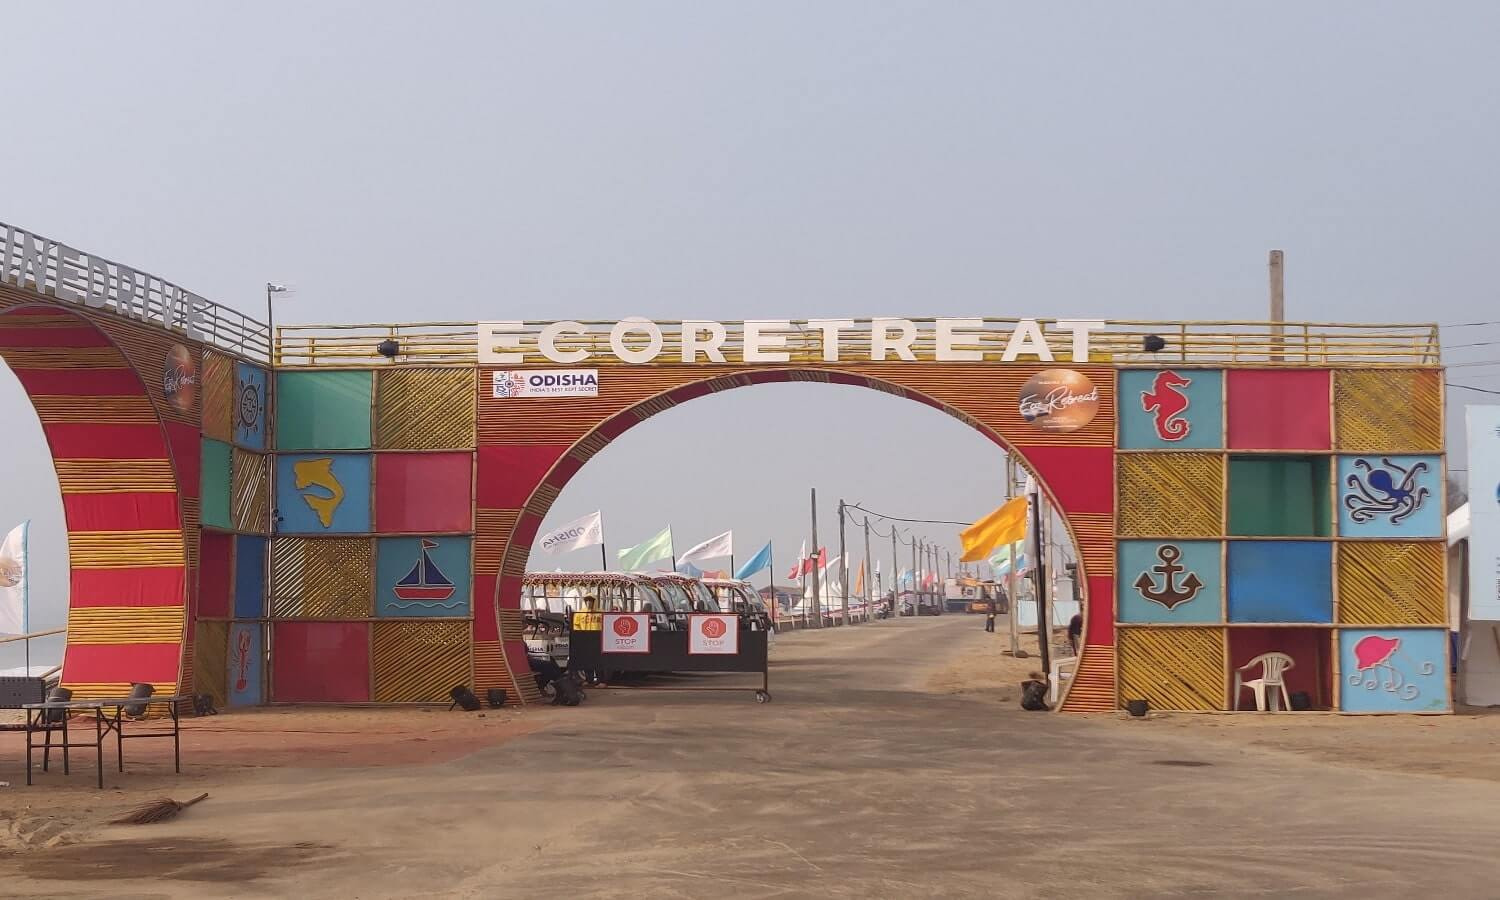 Eco Retreat Odisha 2020: Even bigger, expands to five locations